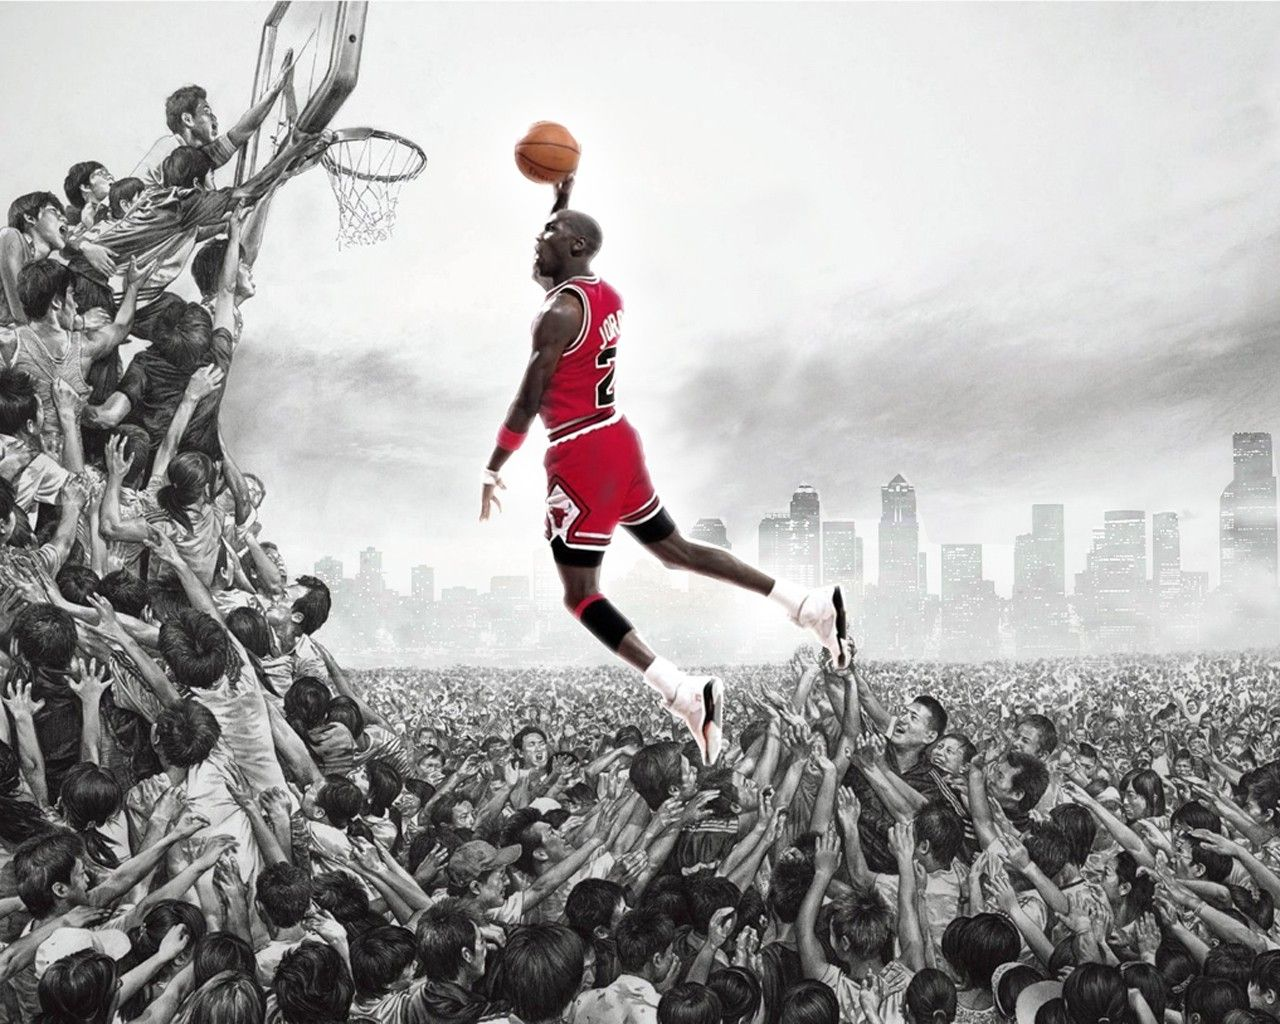 Cool Basketball Wallpapers Group 79 1280x1024